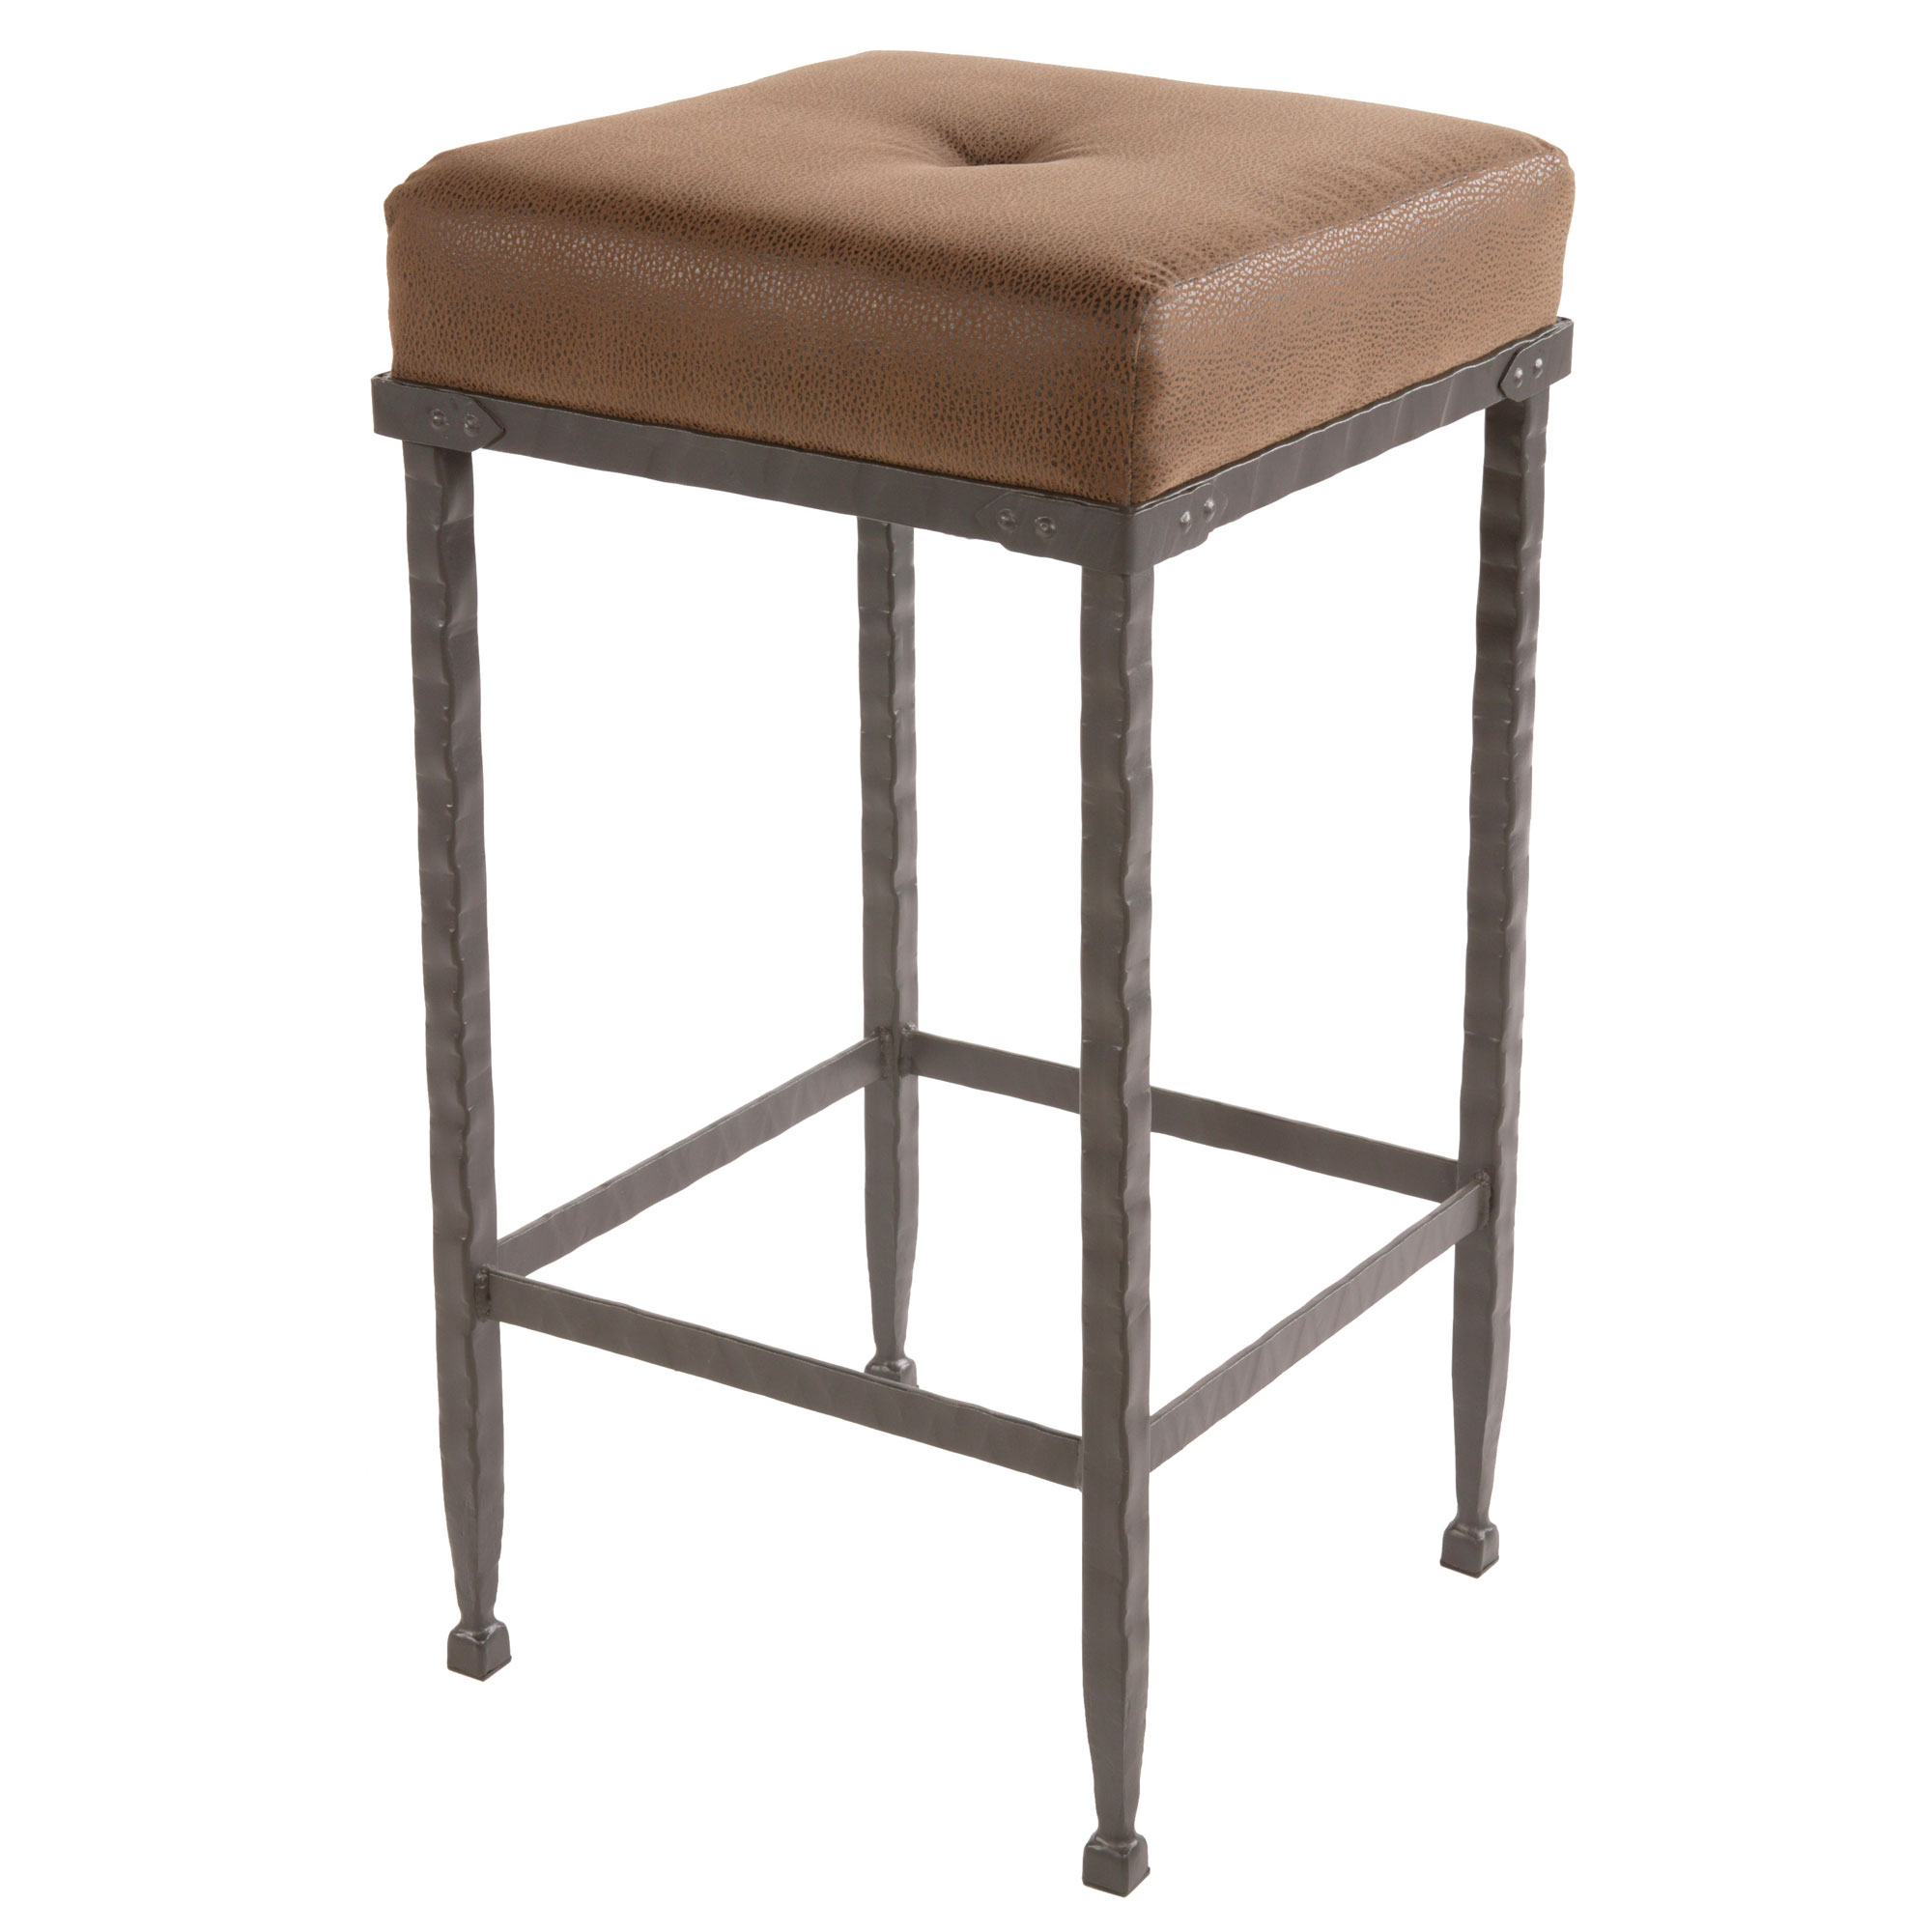 Forest Hill Barstool No Back 25quot : TWI 30 121 2 from www.timelesswroughtiron.com size 2000 x 2000 jpeg 581kB